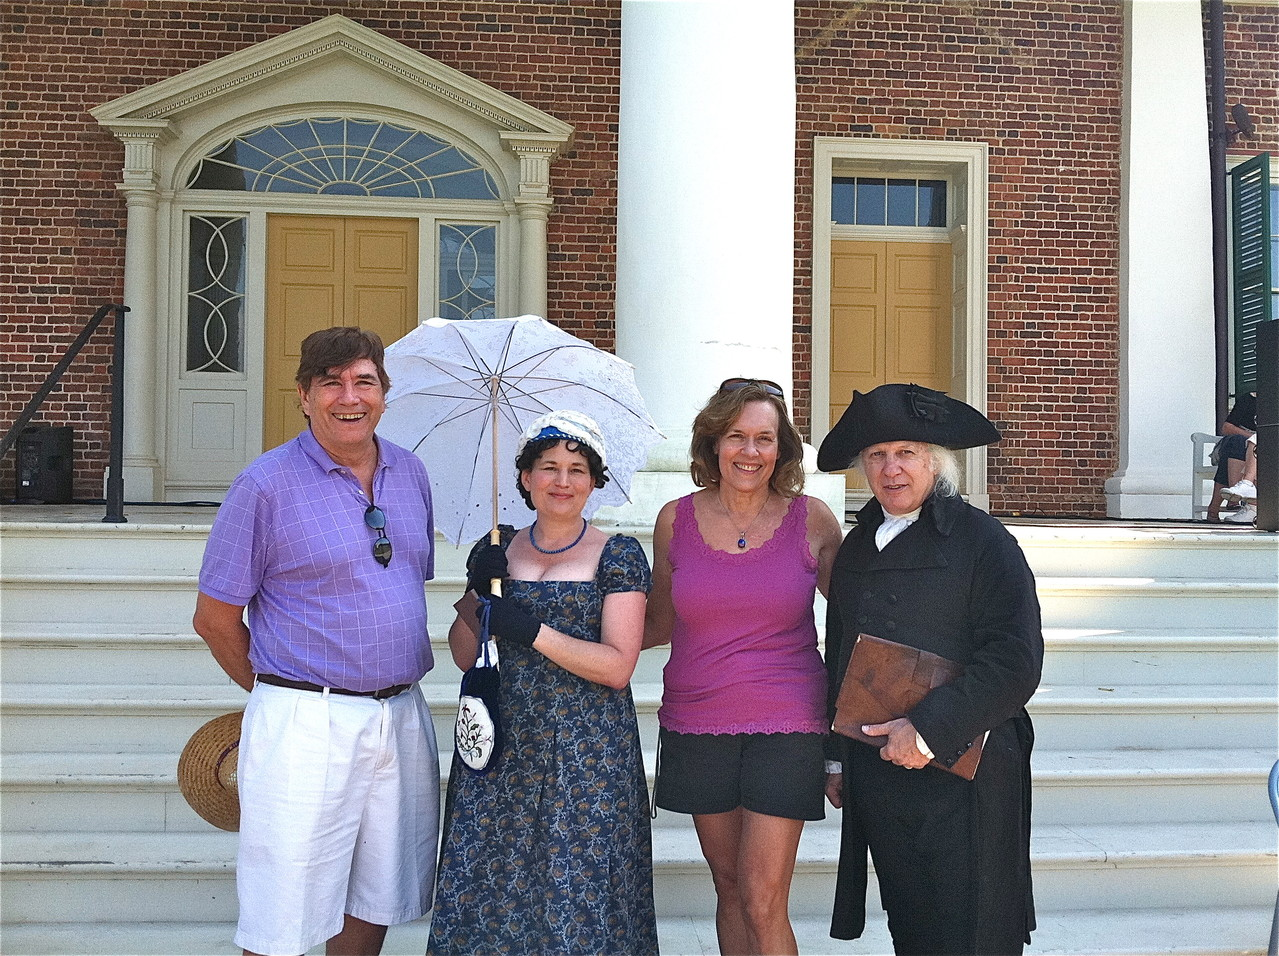 John, Dolley, Lorraine, and James Madison